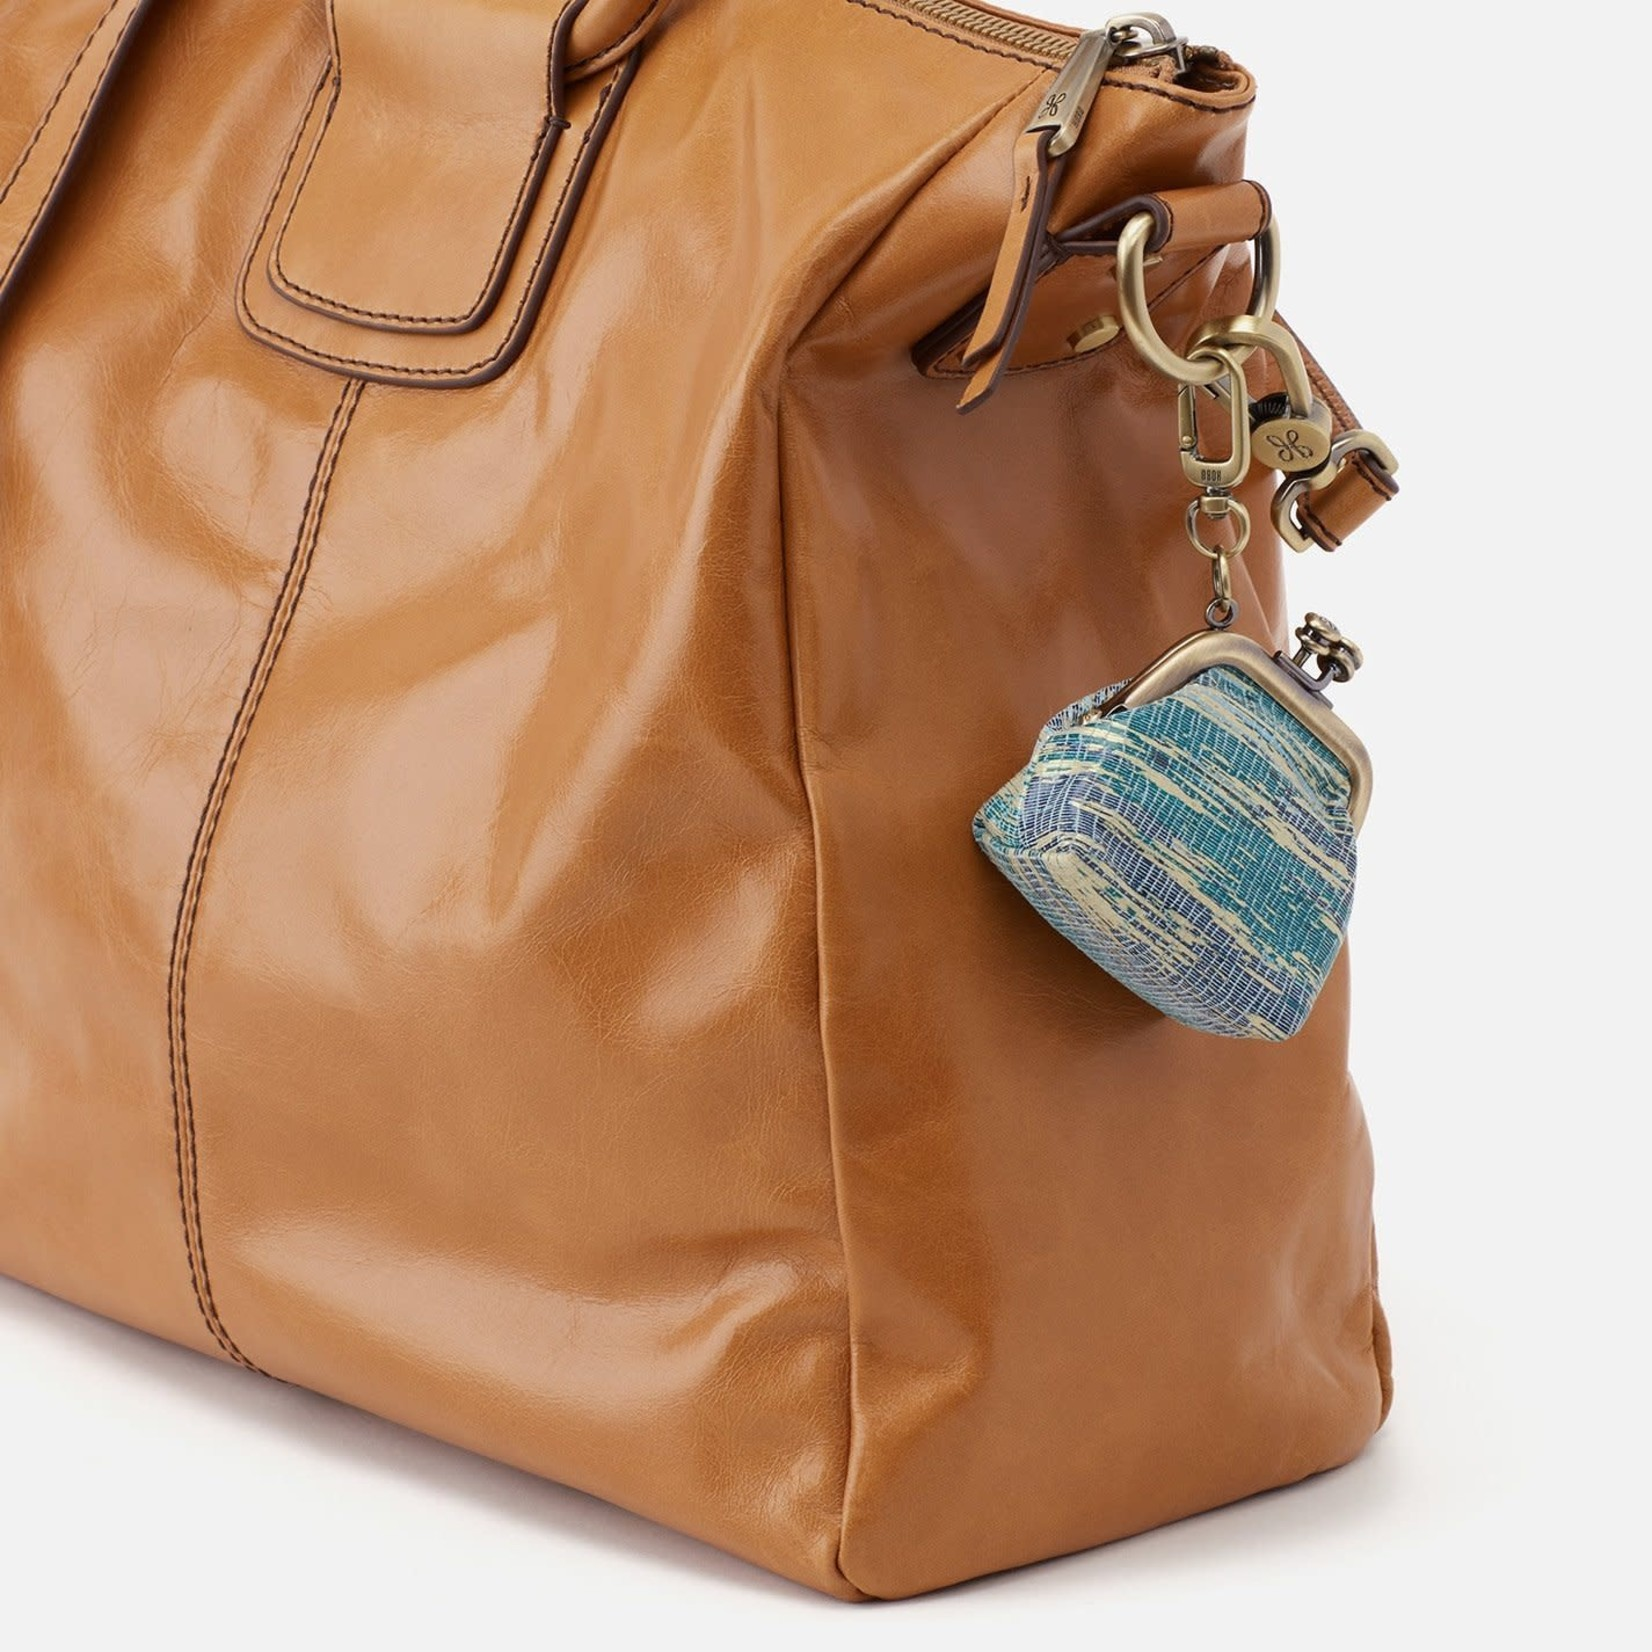 HOBO Run Cracked Glass Vintage Leather Frame Pouch